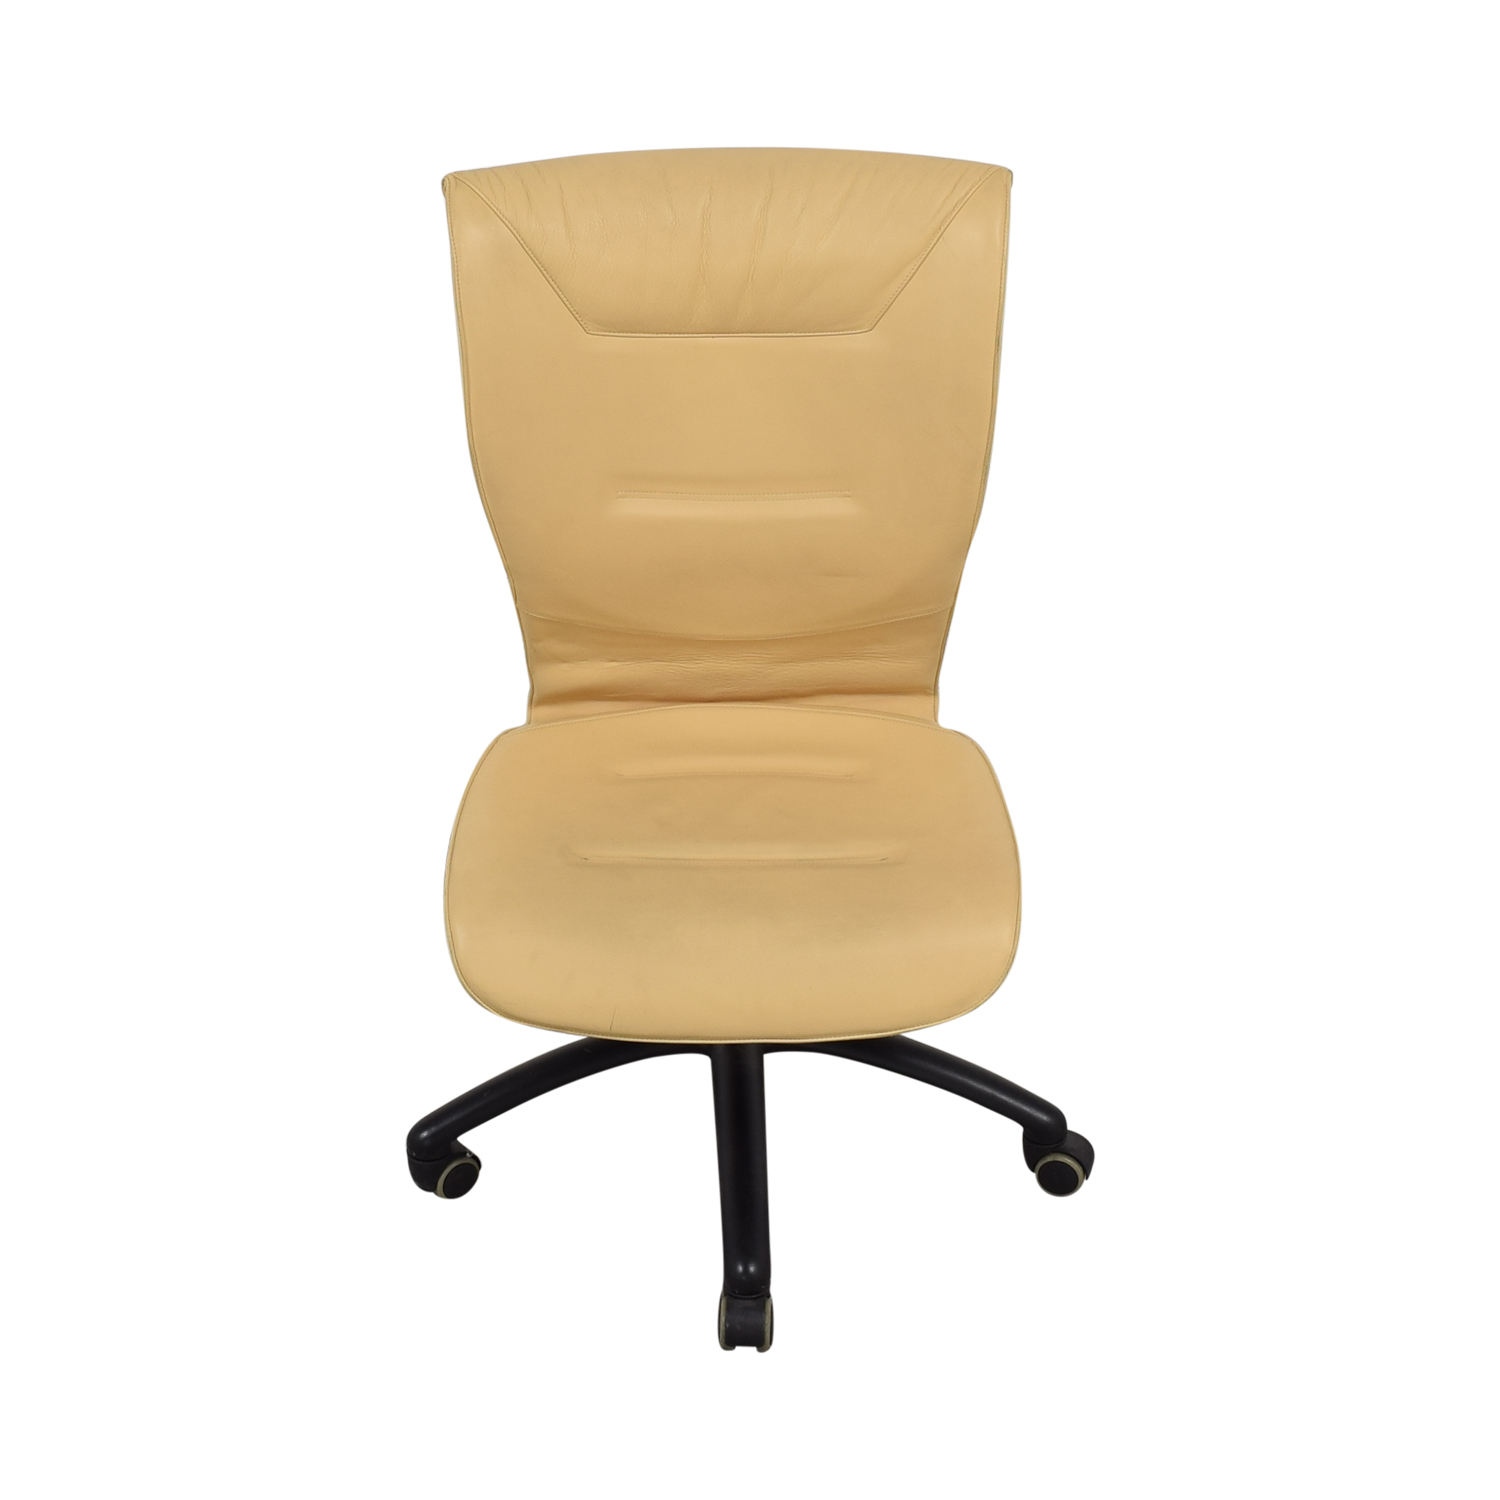 shop Poltrona Frau Office Chair Poltrona Frau Home Office Chairs